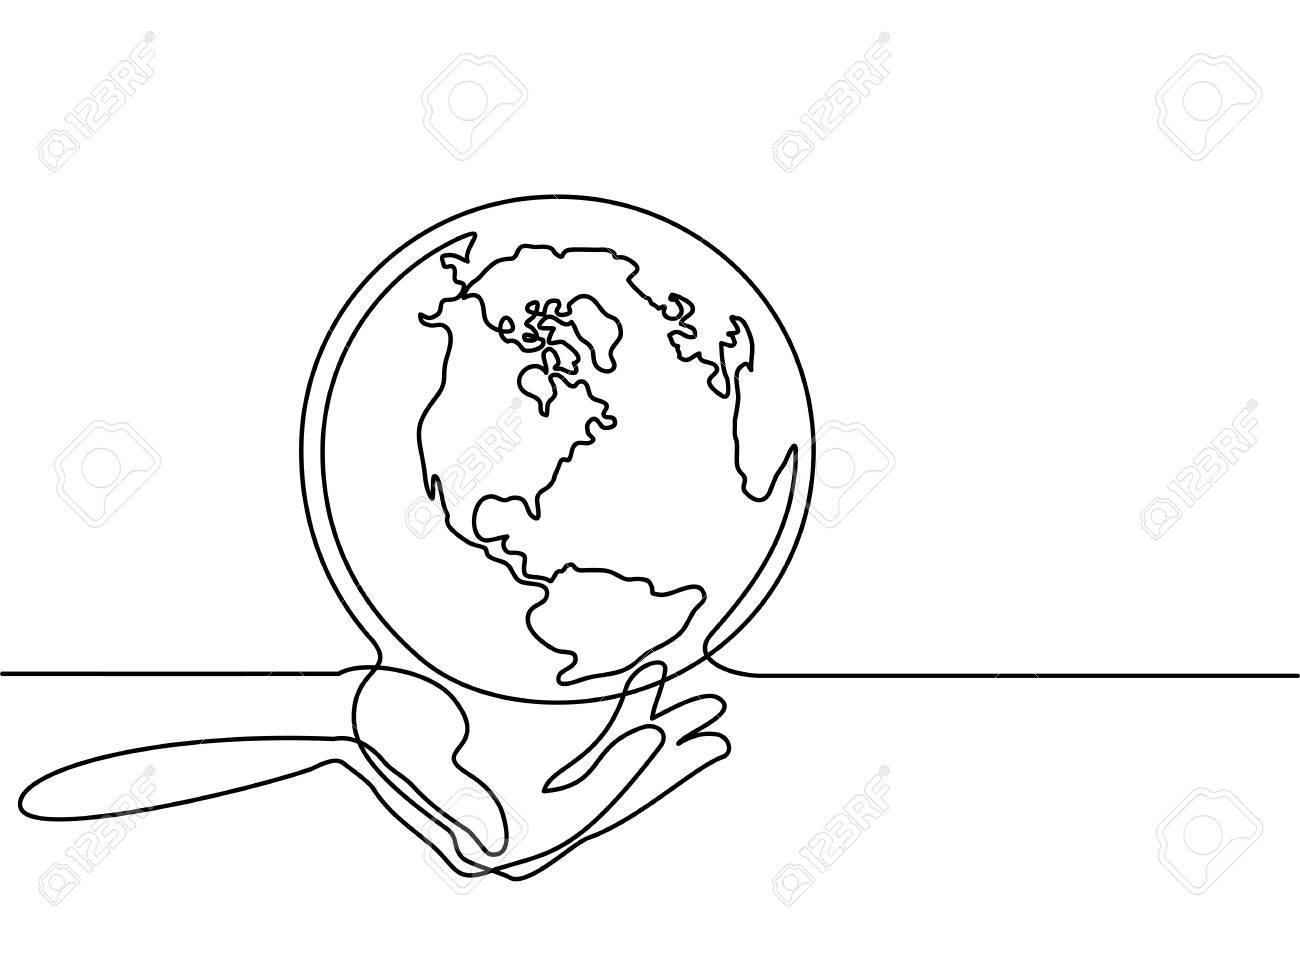 America Map Drawing.Continuous Line Drawing Globe Of The Earth In Human Hands Map